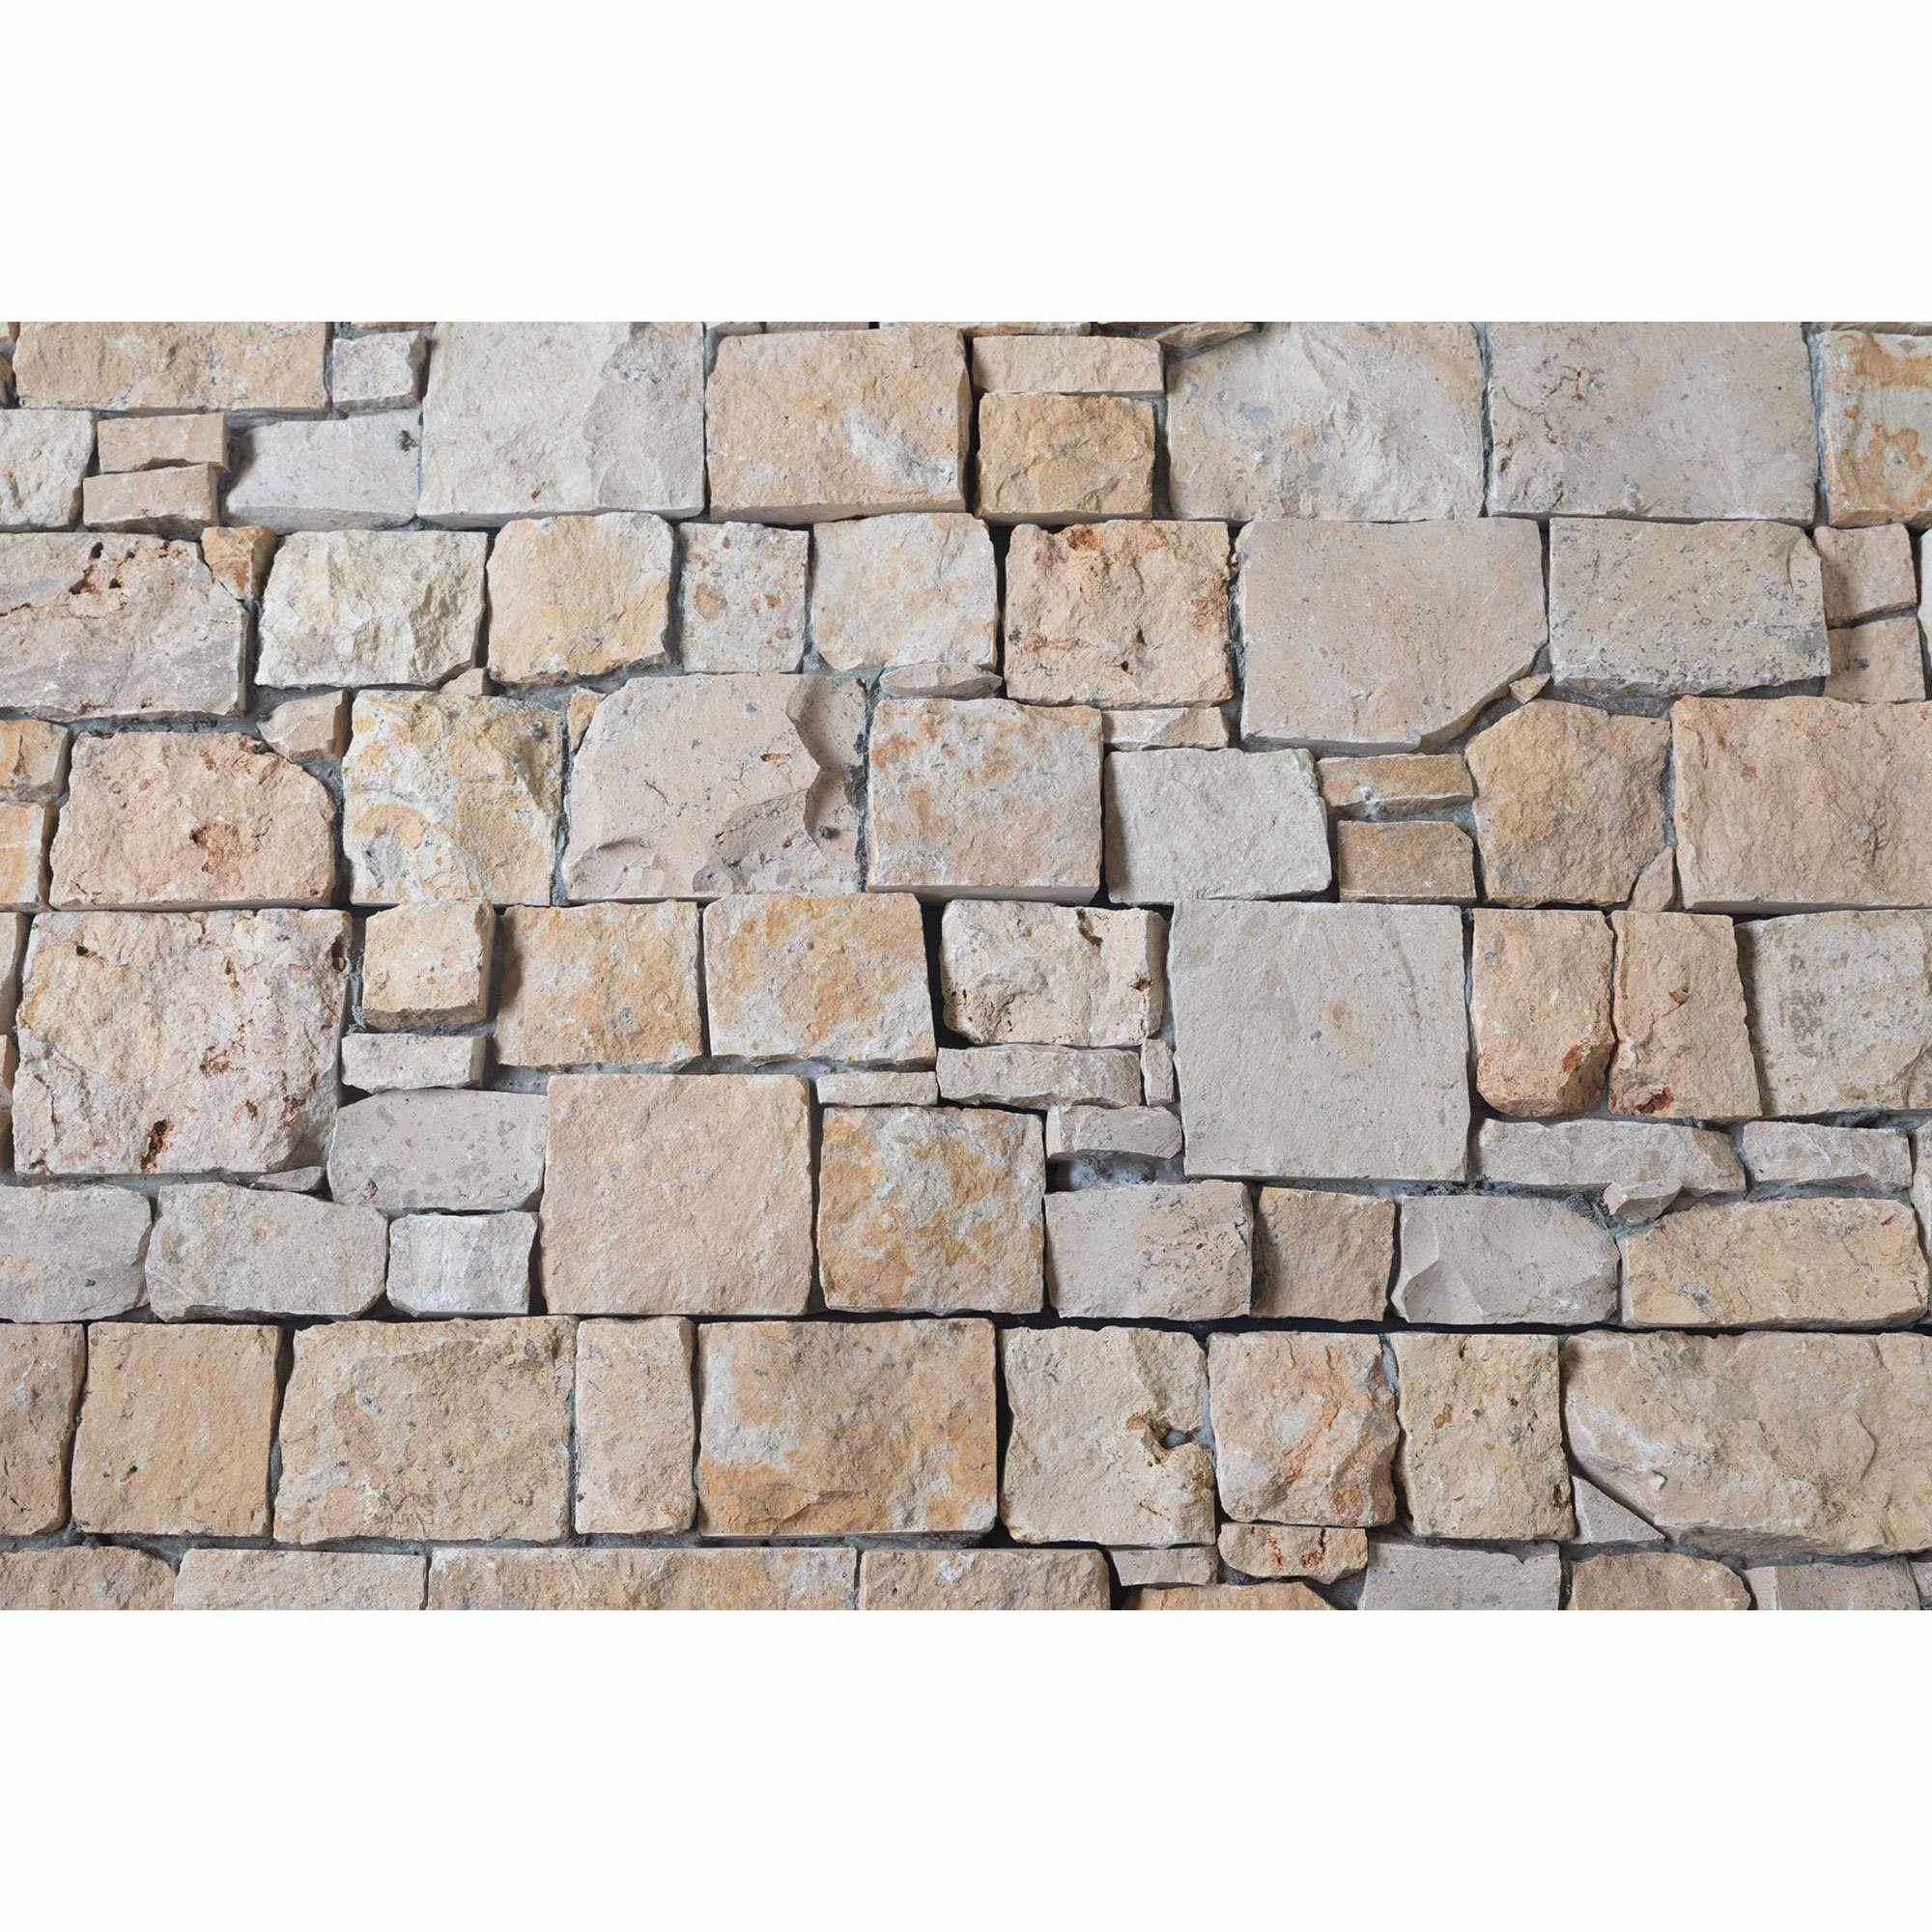 Natural Ledgestone Feature Wall Cladding Panels - Yellow Travertine-Wall Cladding-Stone and Rock